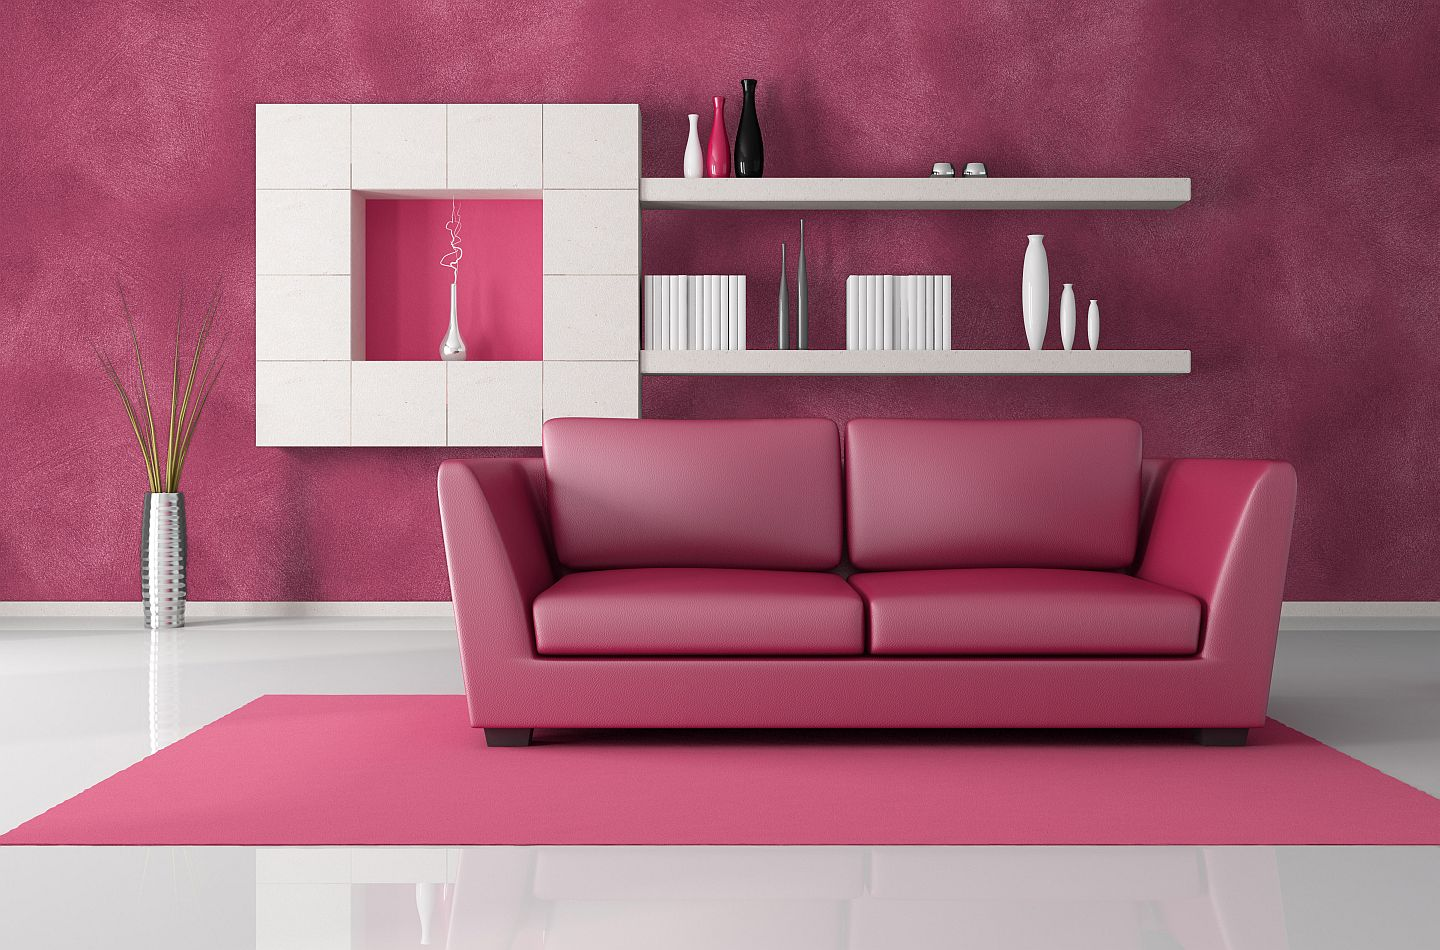 Interior design portfolio mercy web solutions for Sofa interior design